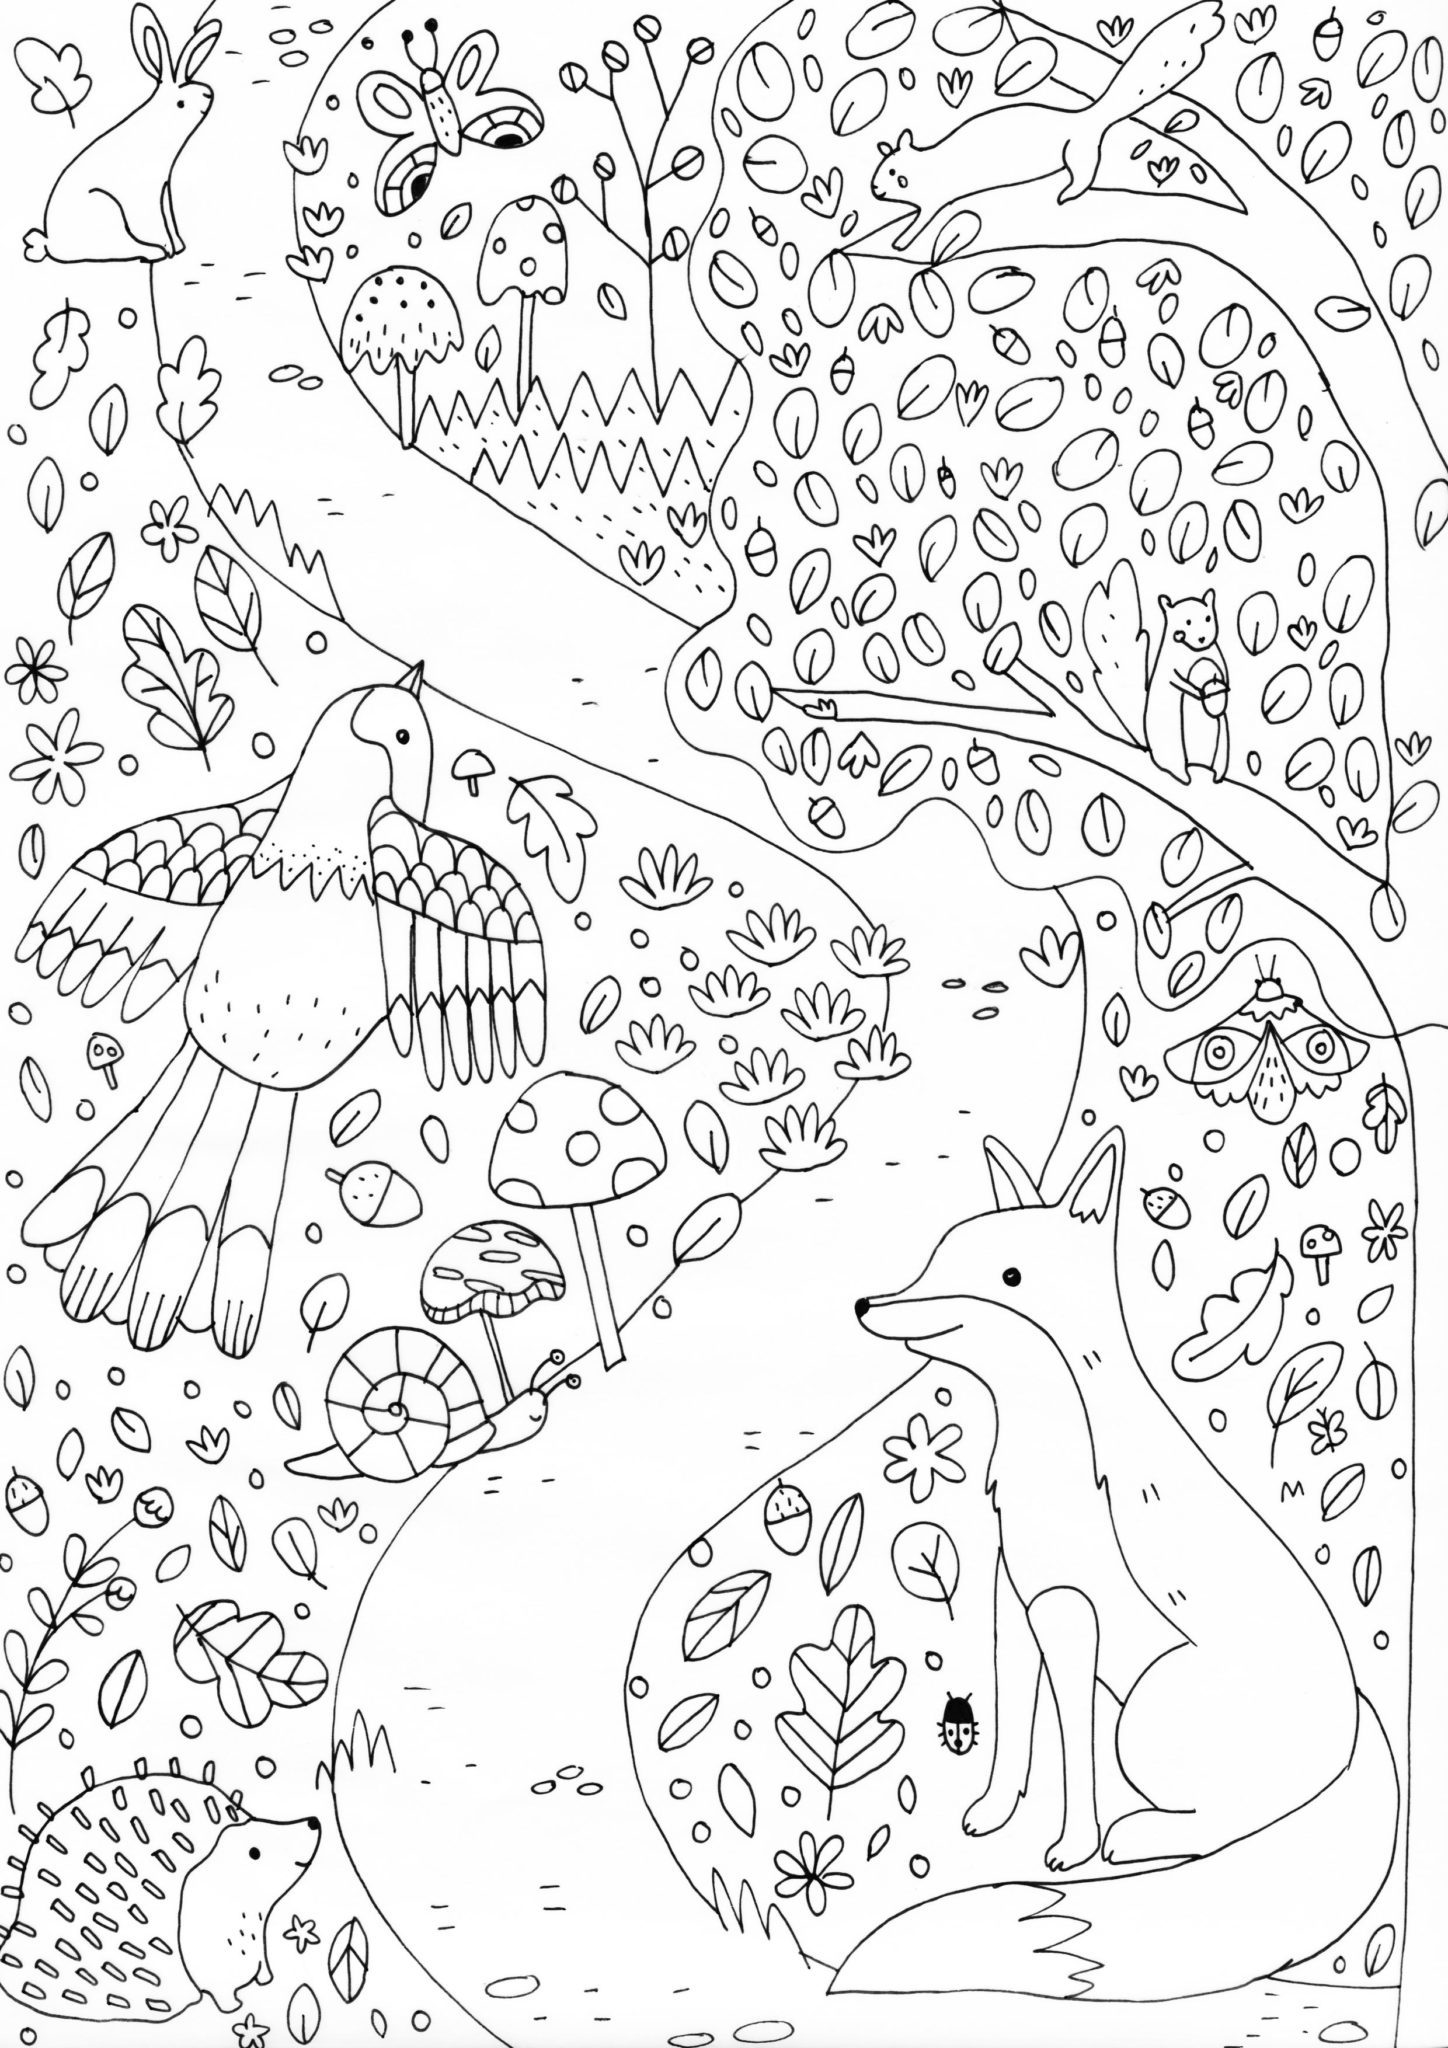 A4 Printable Colouring Sheet The Blurt Foundation